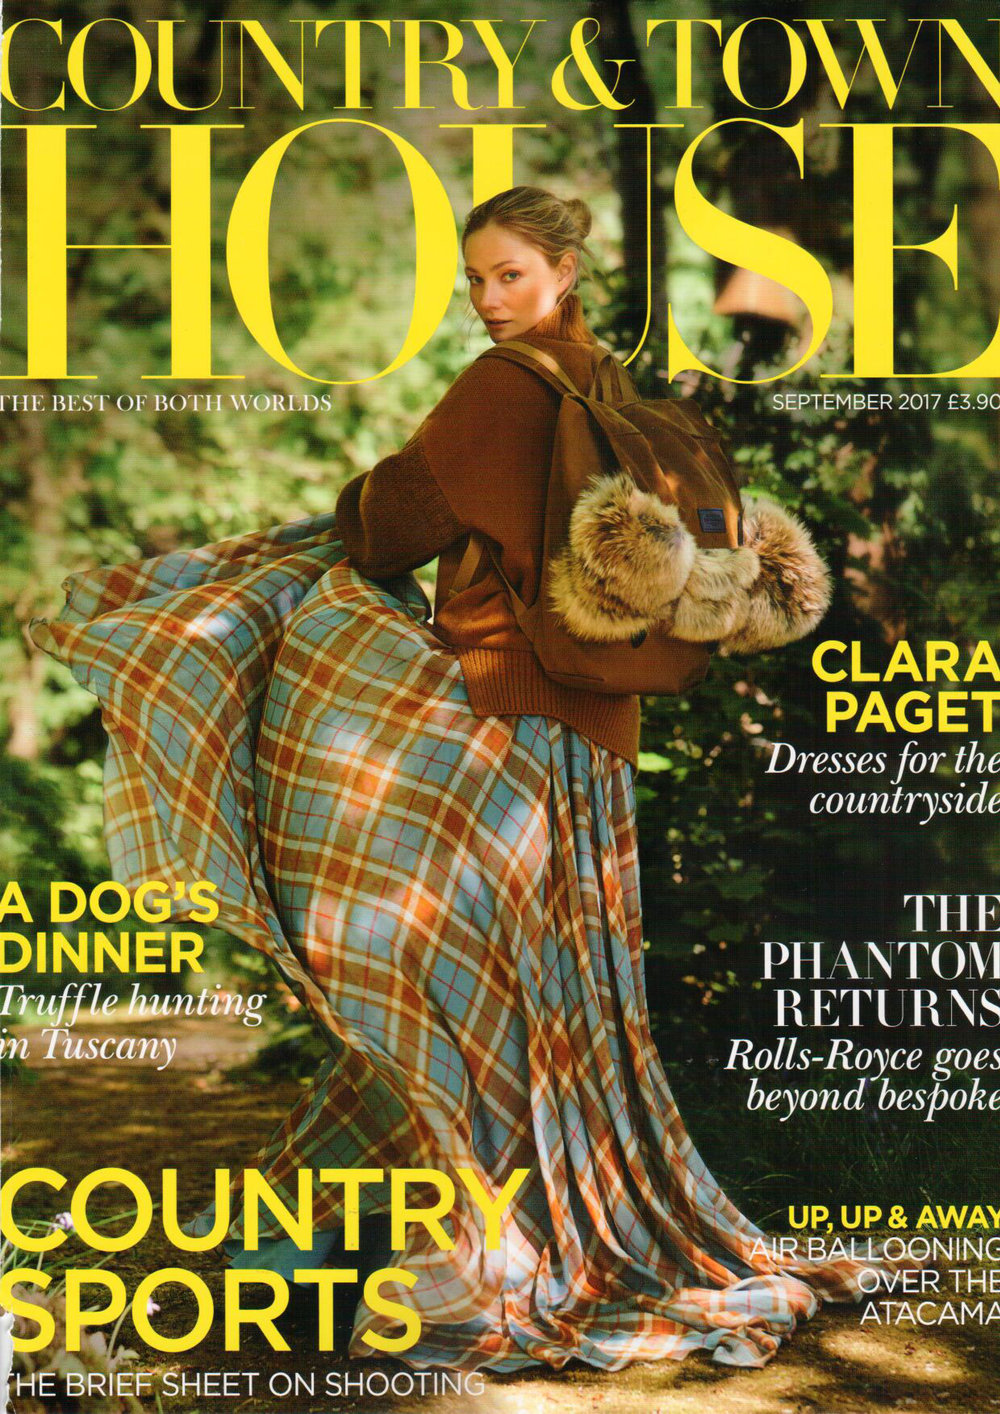 Country & Townhouse Cover, September Issue, 2017.jpg